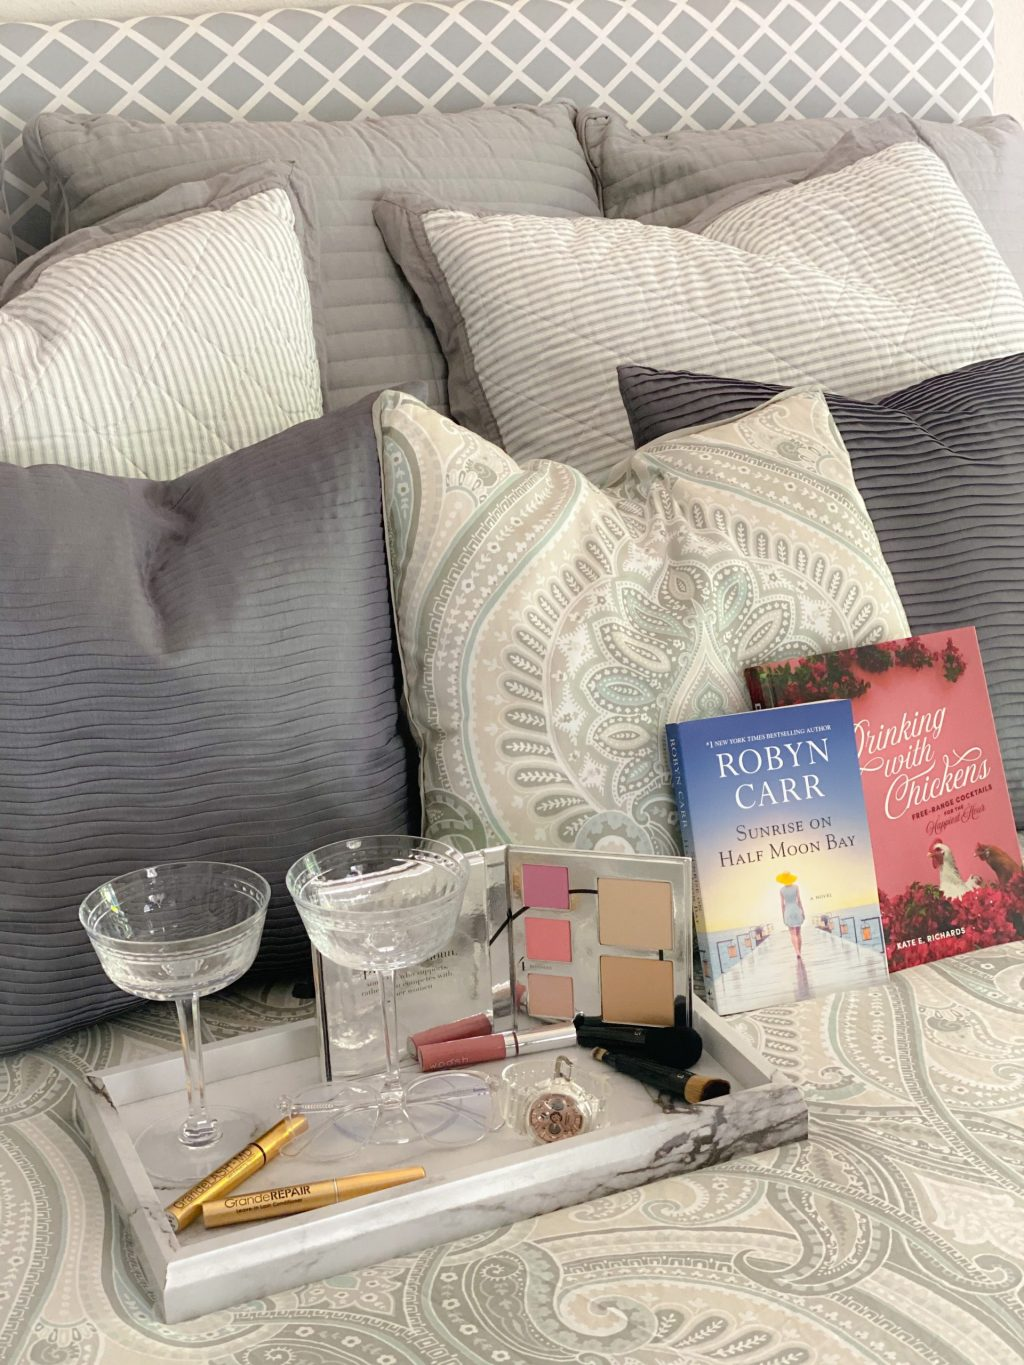 glasses, books, makeup palette, pink lip gloss, gold lash serum bottles, black make brushes, clear watch and clear glasses on white and gray bed